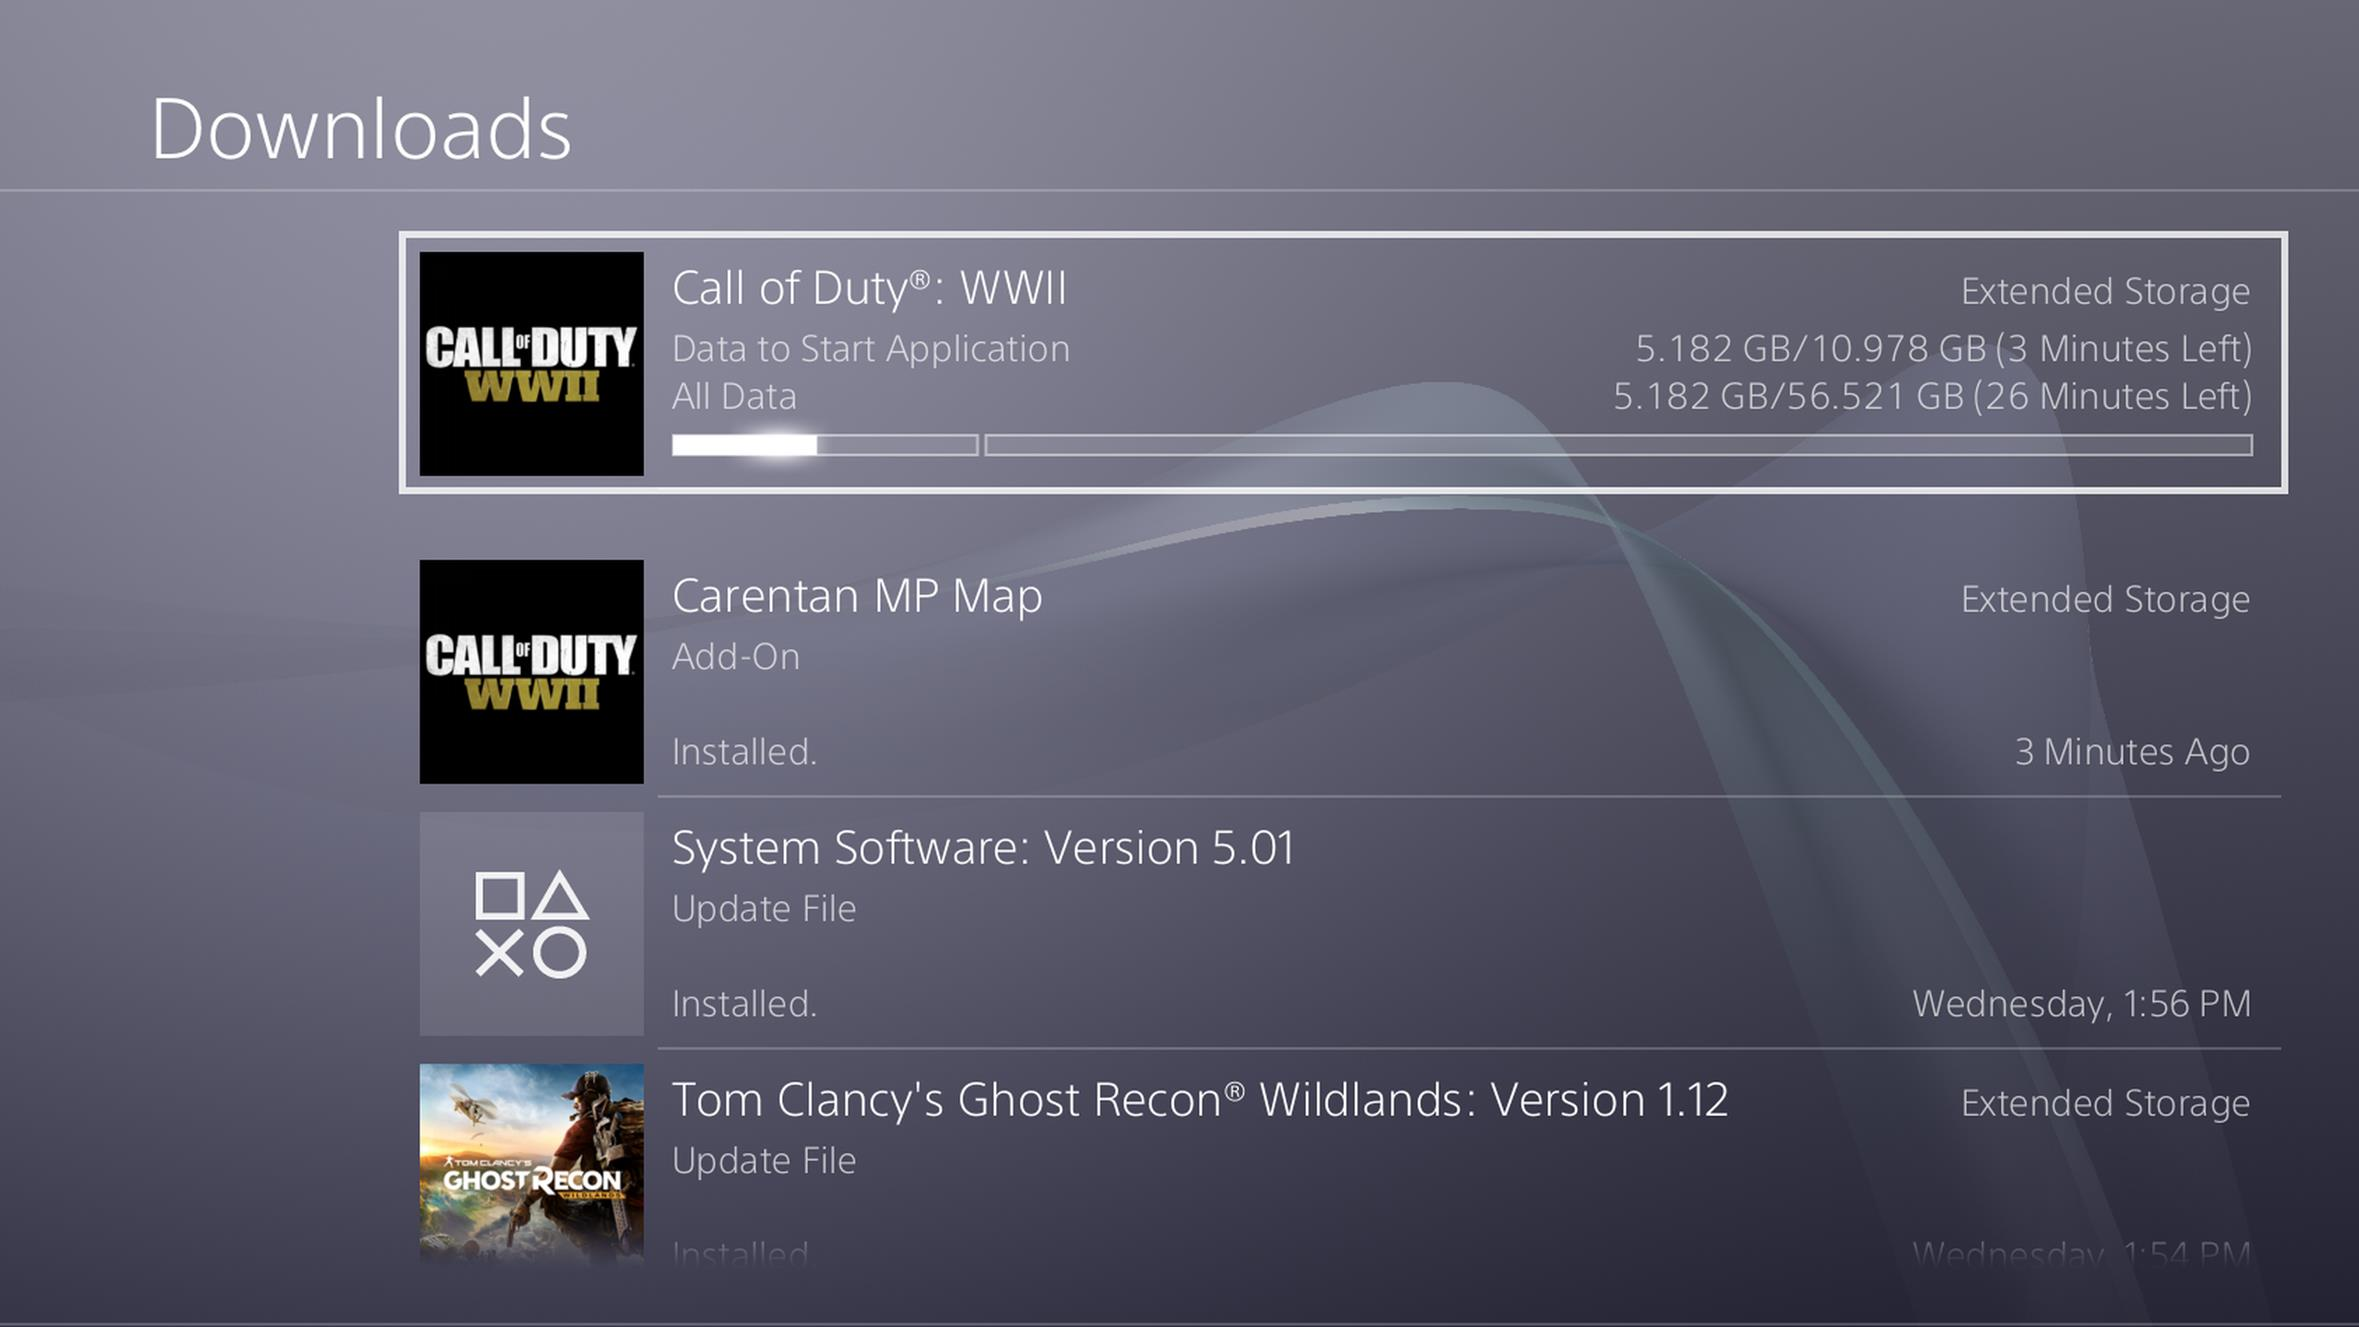 Call Of Duty Wwii Download Size For Pc And Playstation 4 Revealed Pre Load Now Available Gamezone